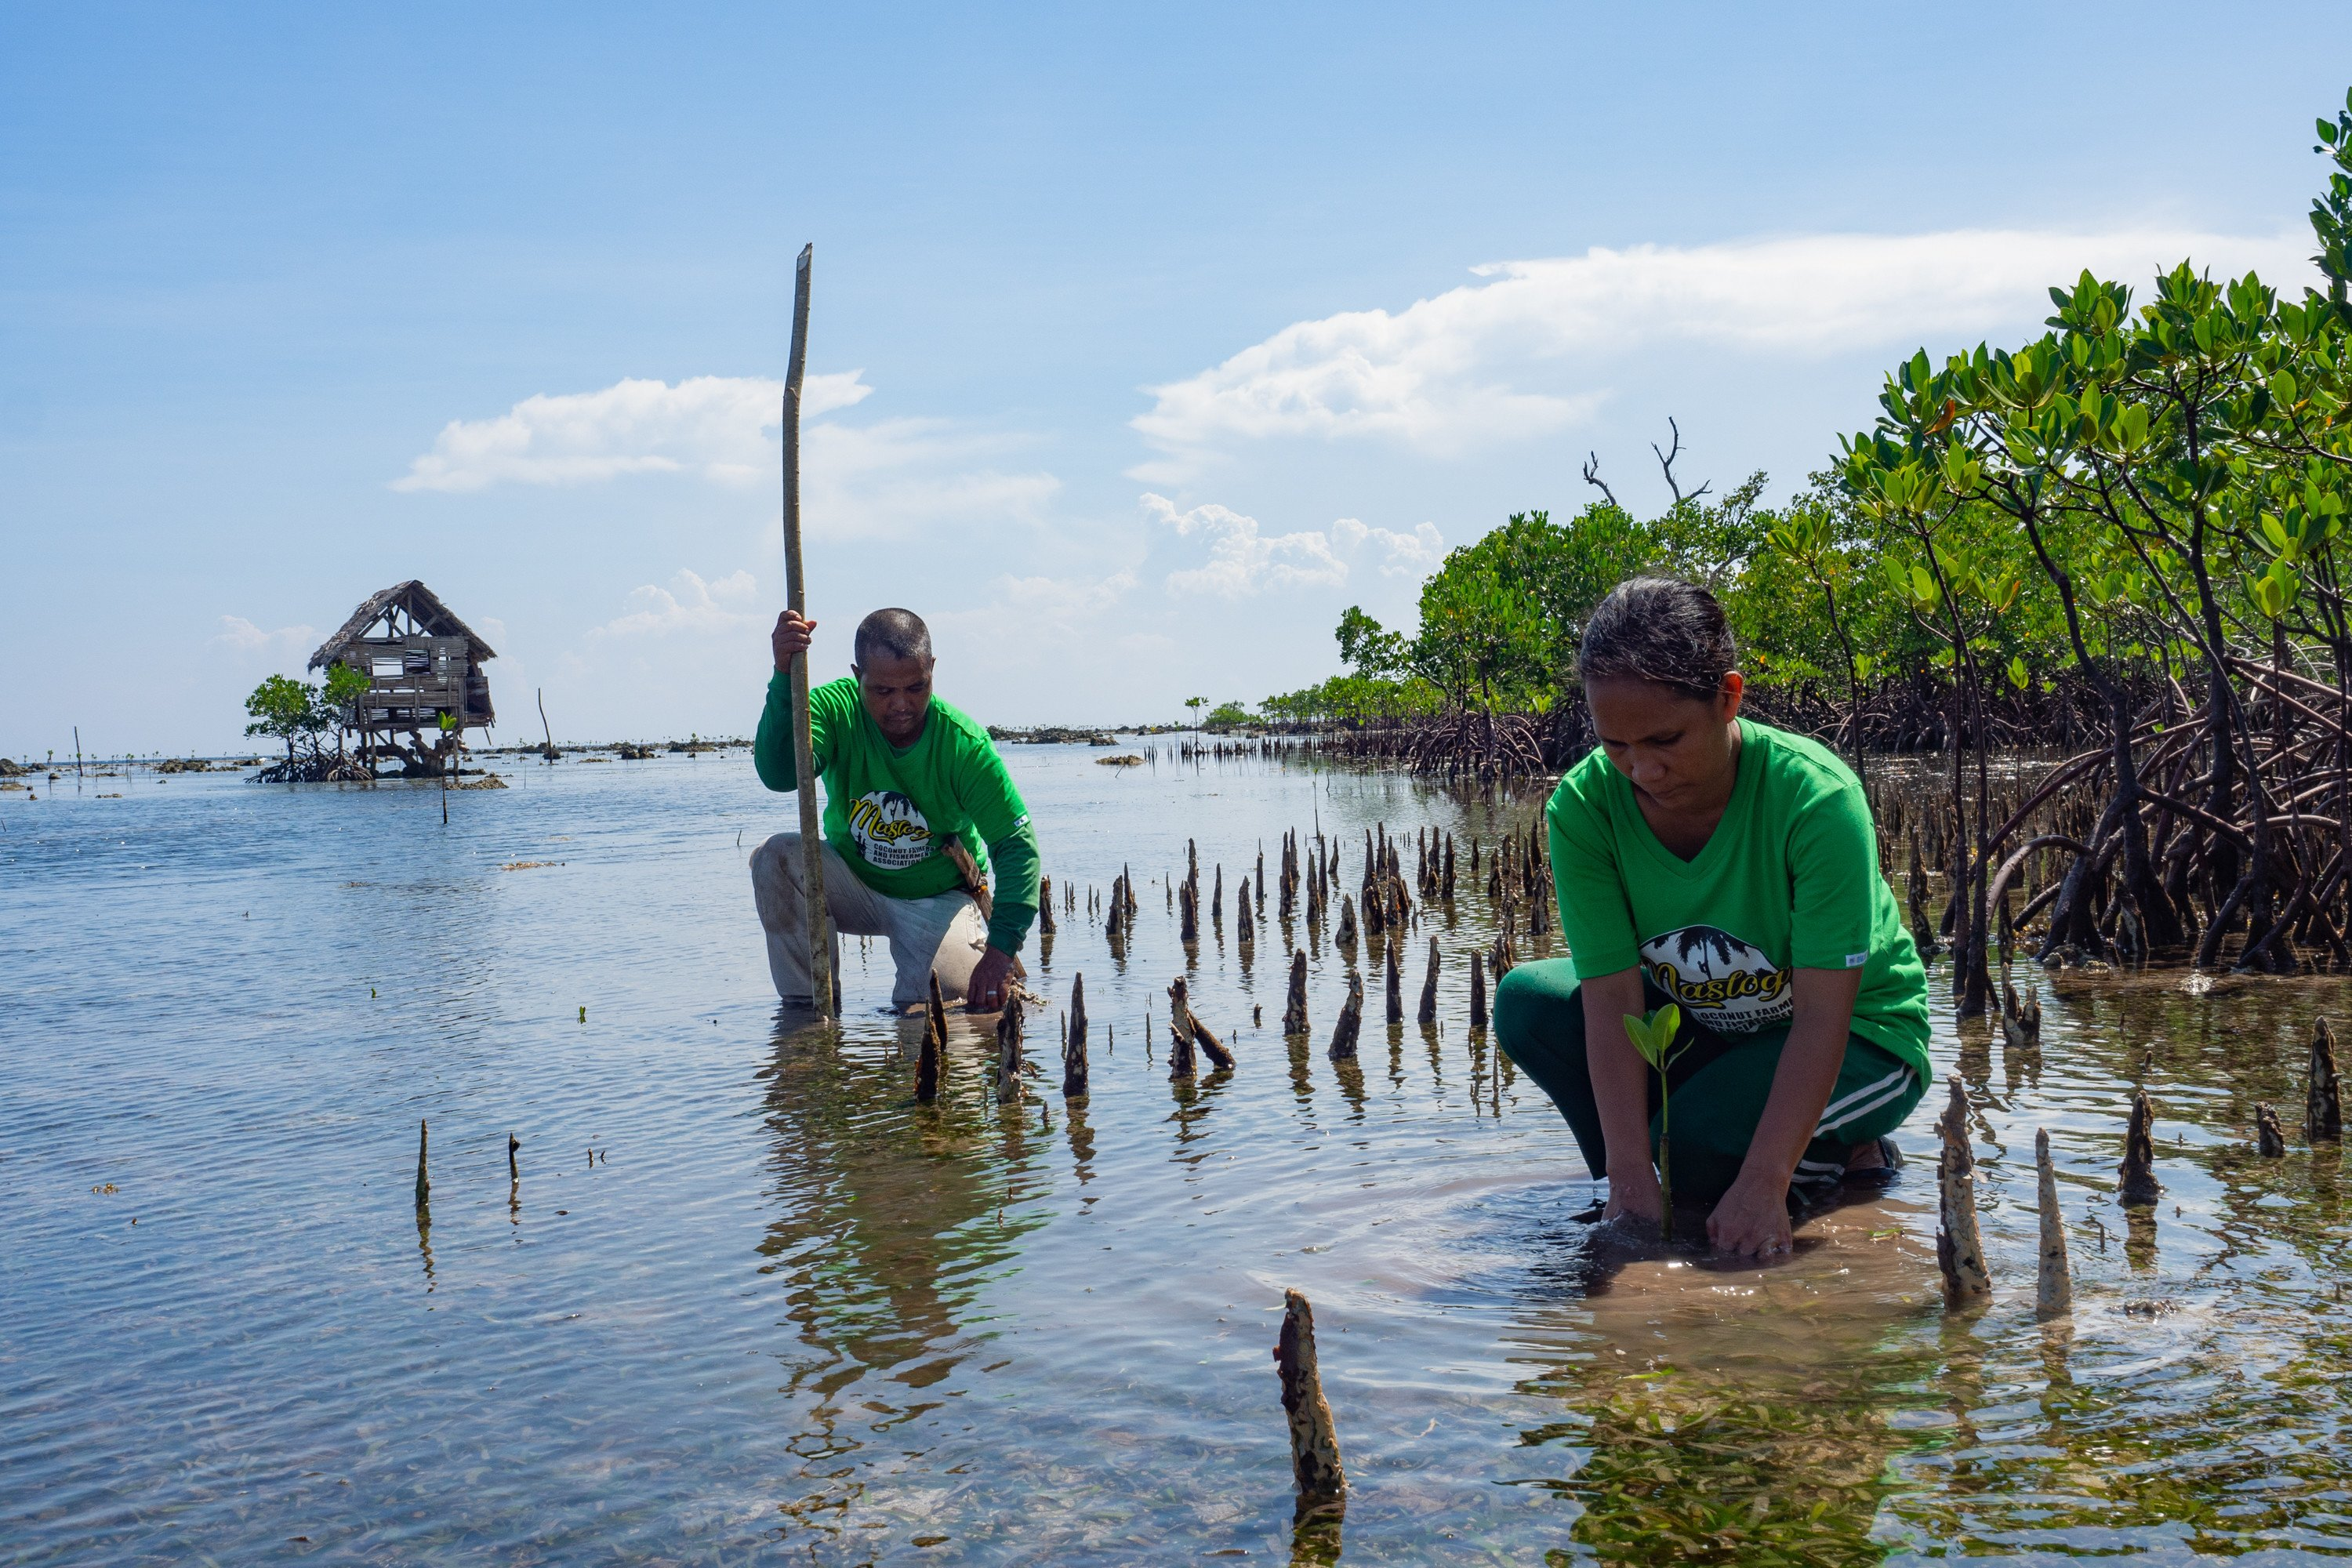 In Vietnam and the Philippines, mangroves are planted as a buffer to storm surges.